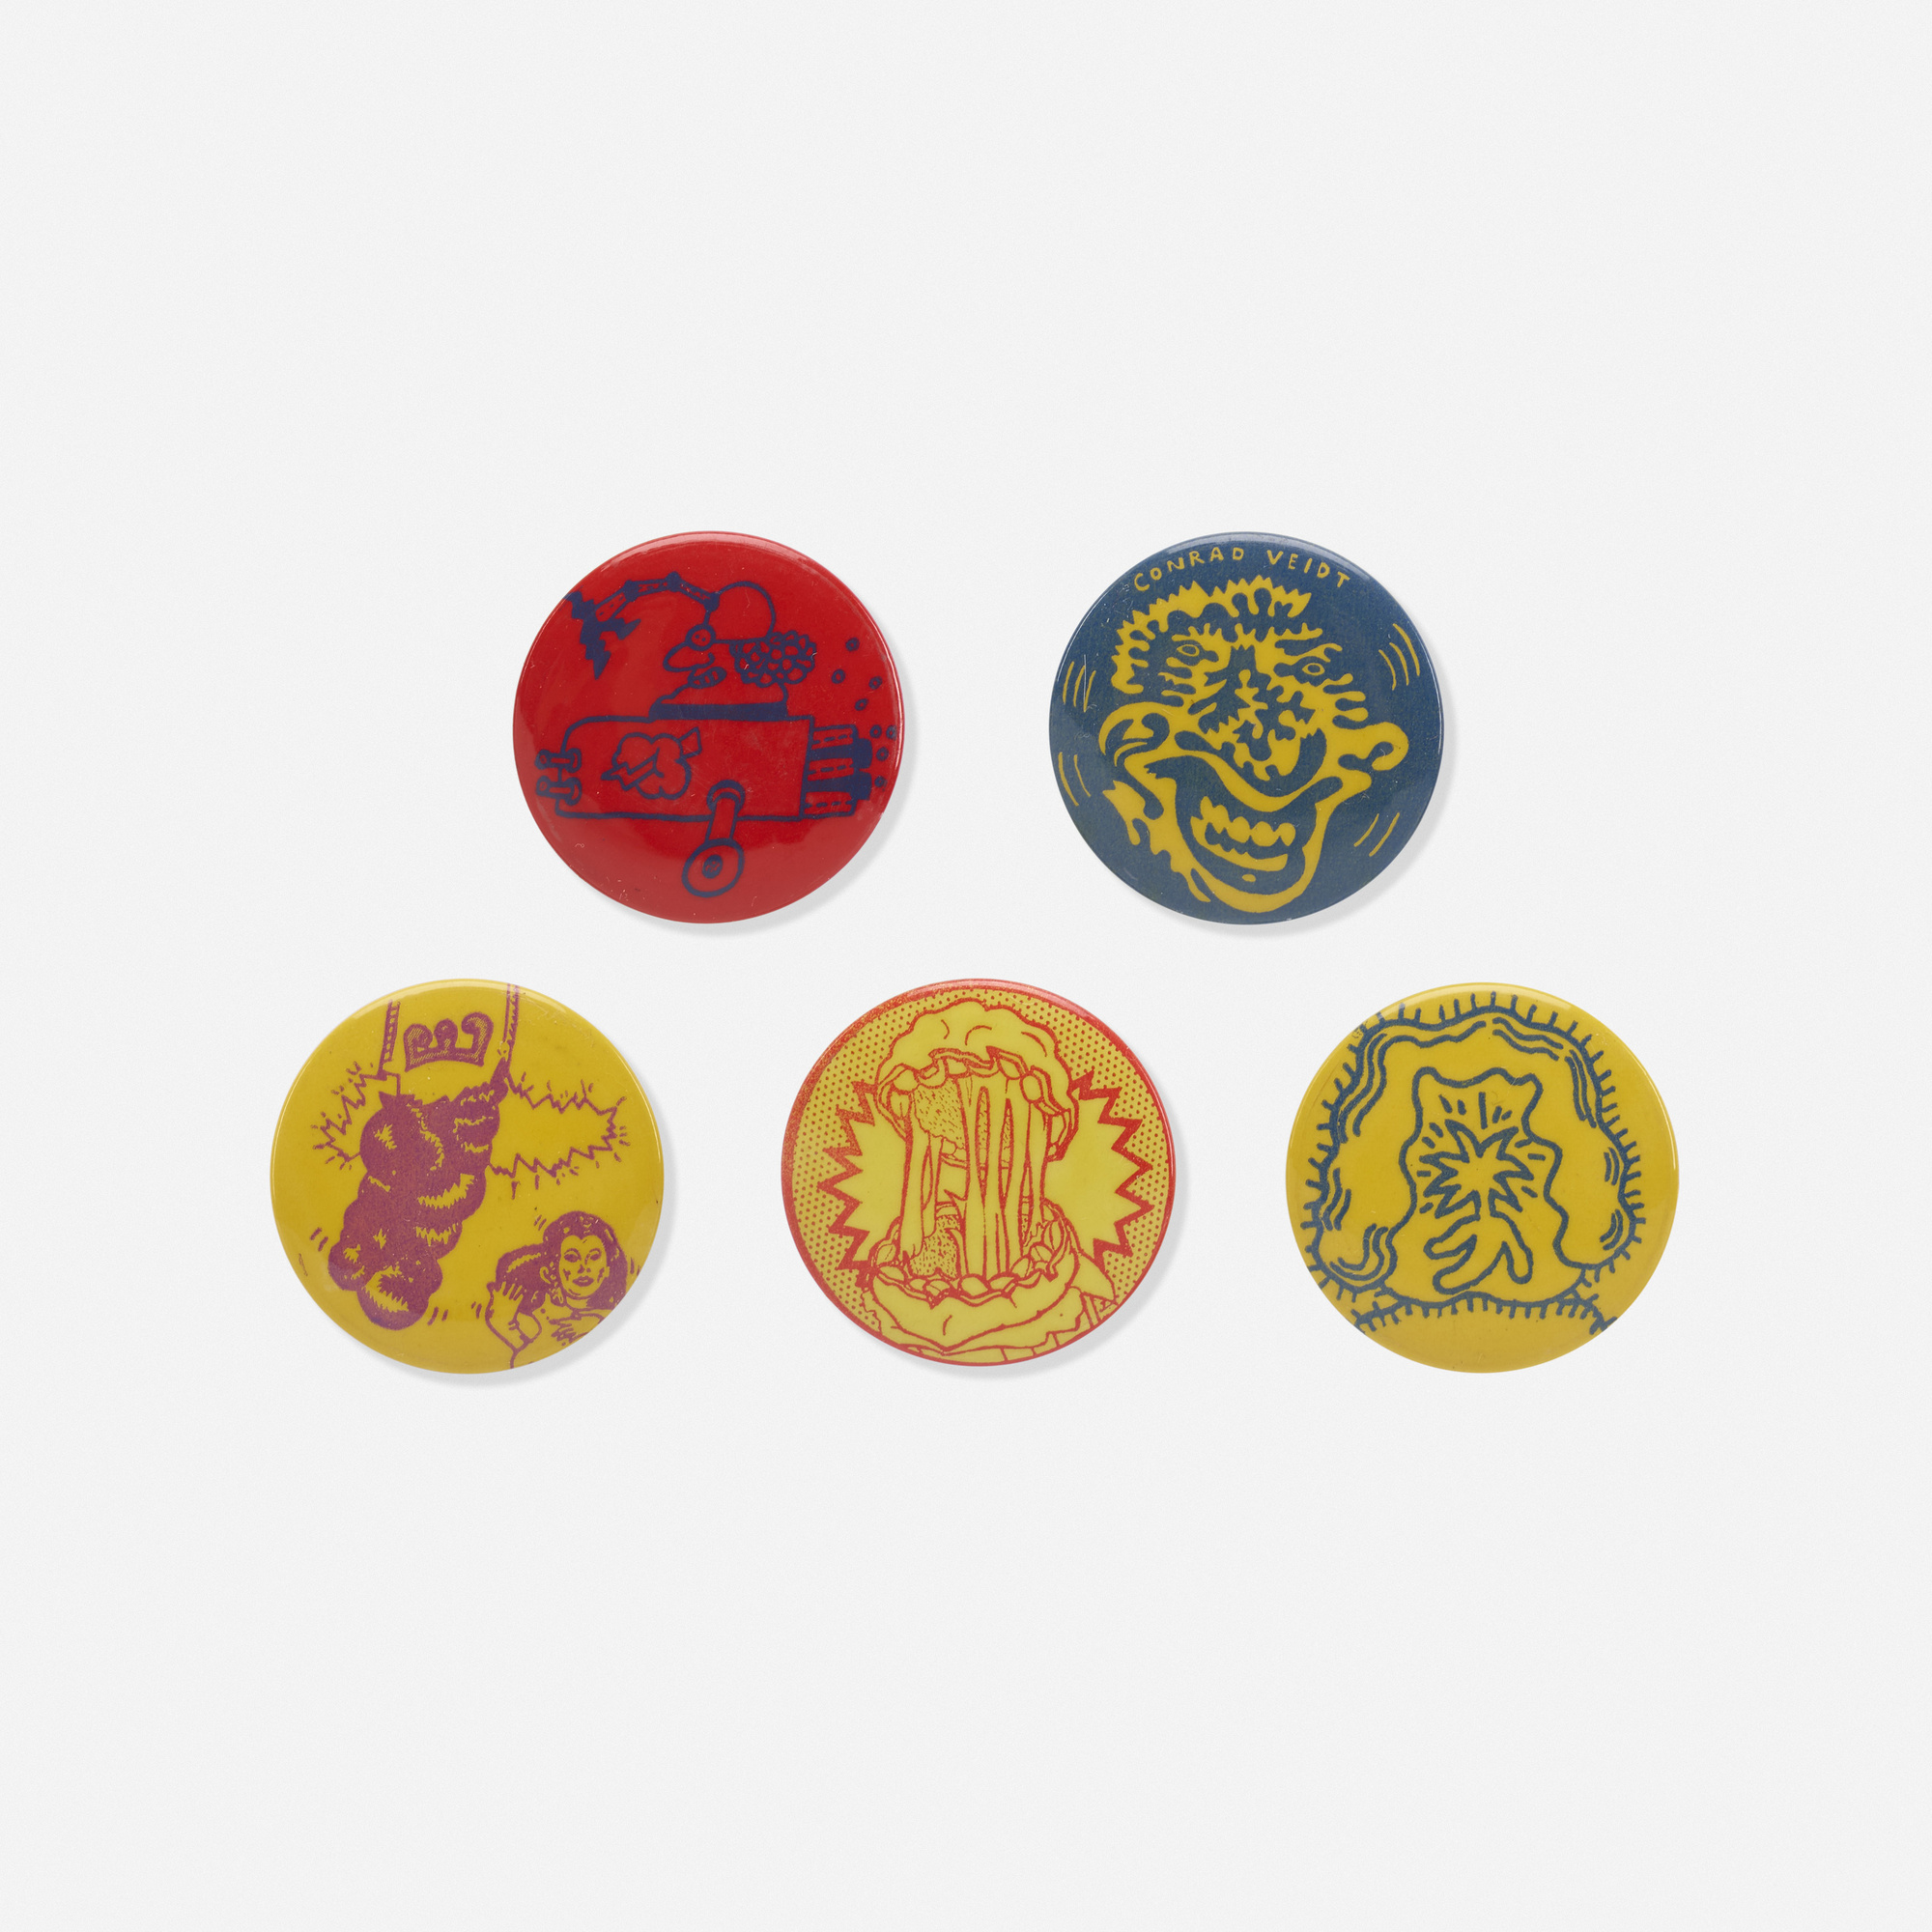 226: Hairy Who (Various Artists) / buttons (complete set) (1 of 1)